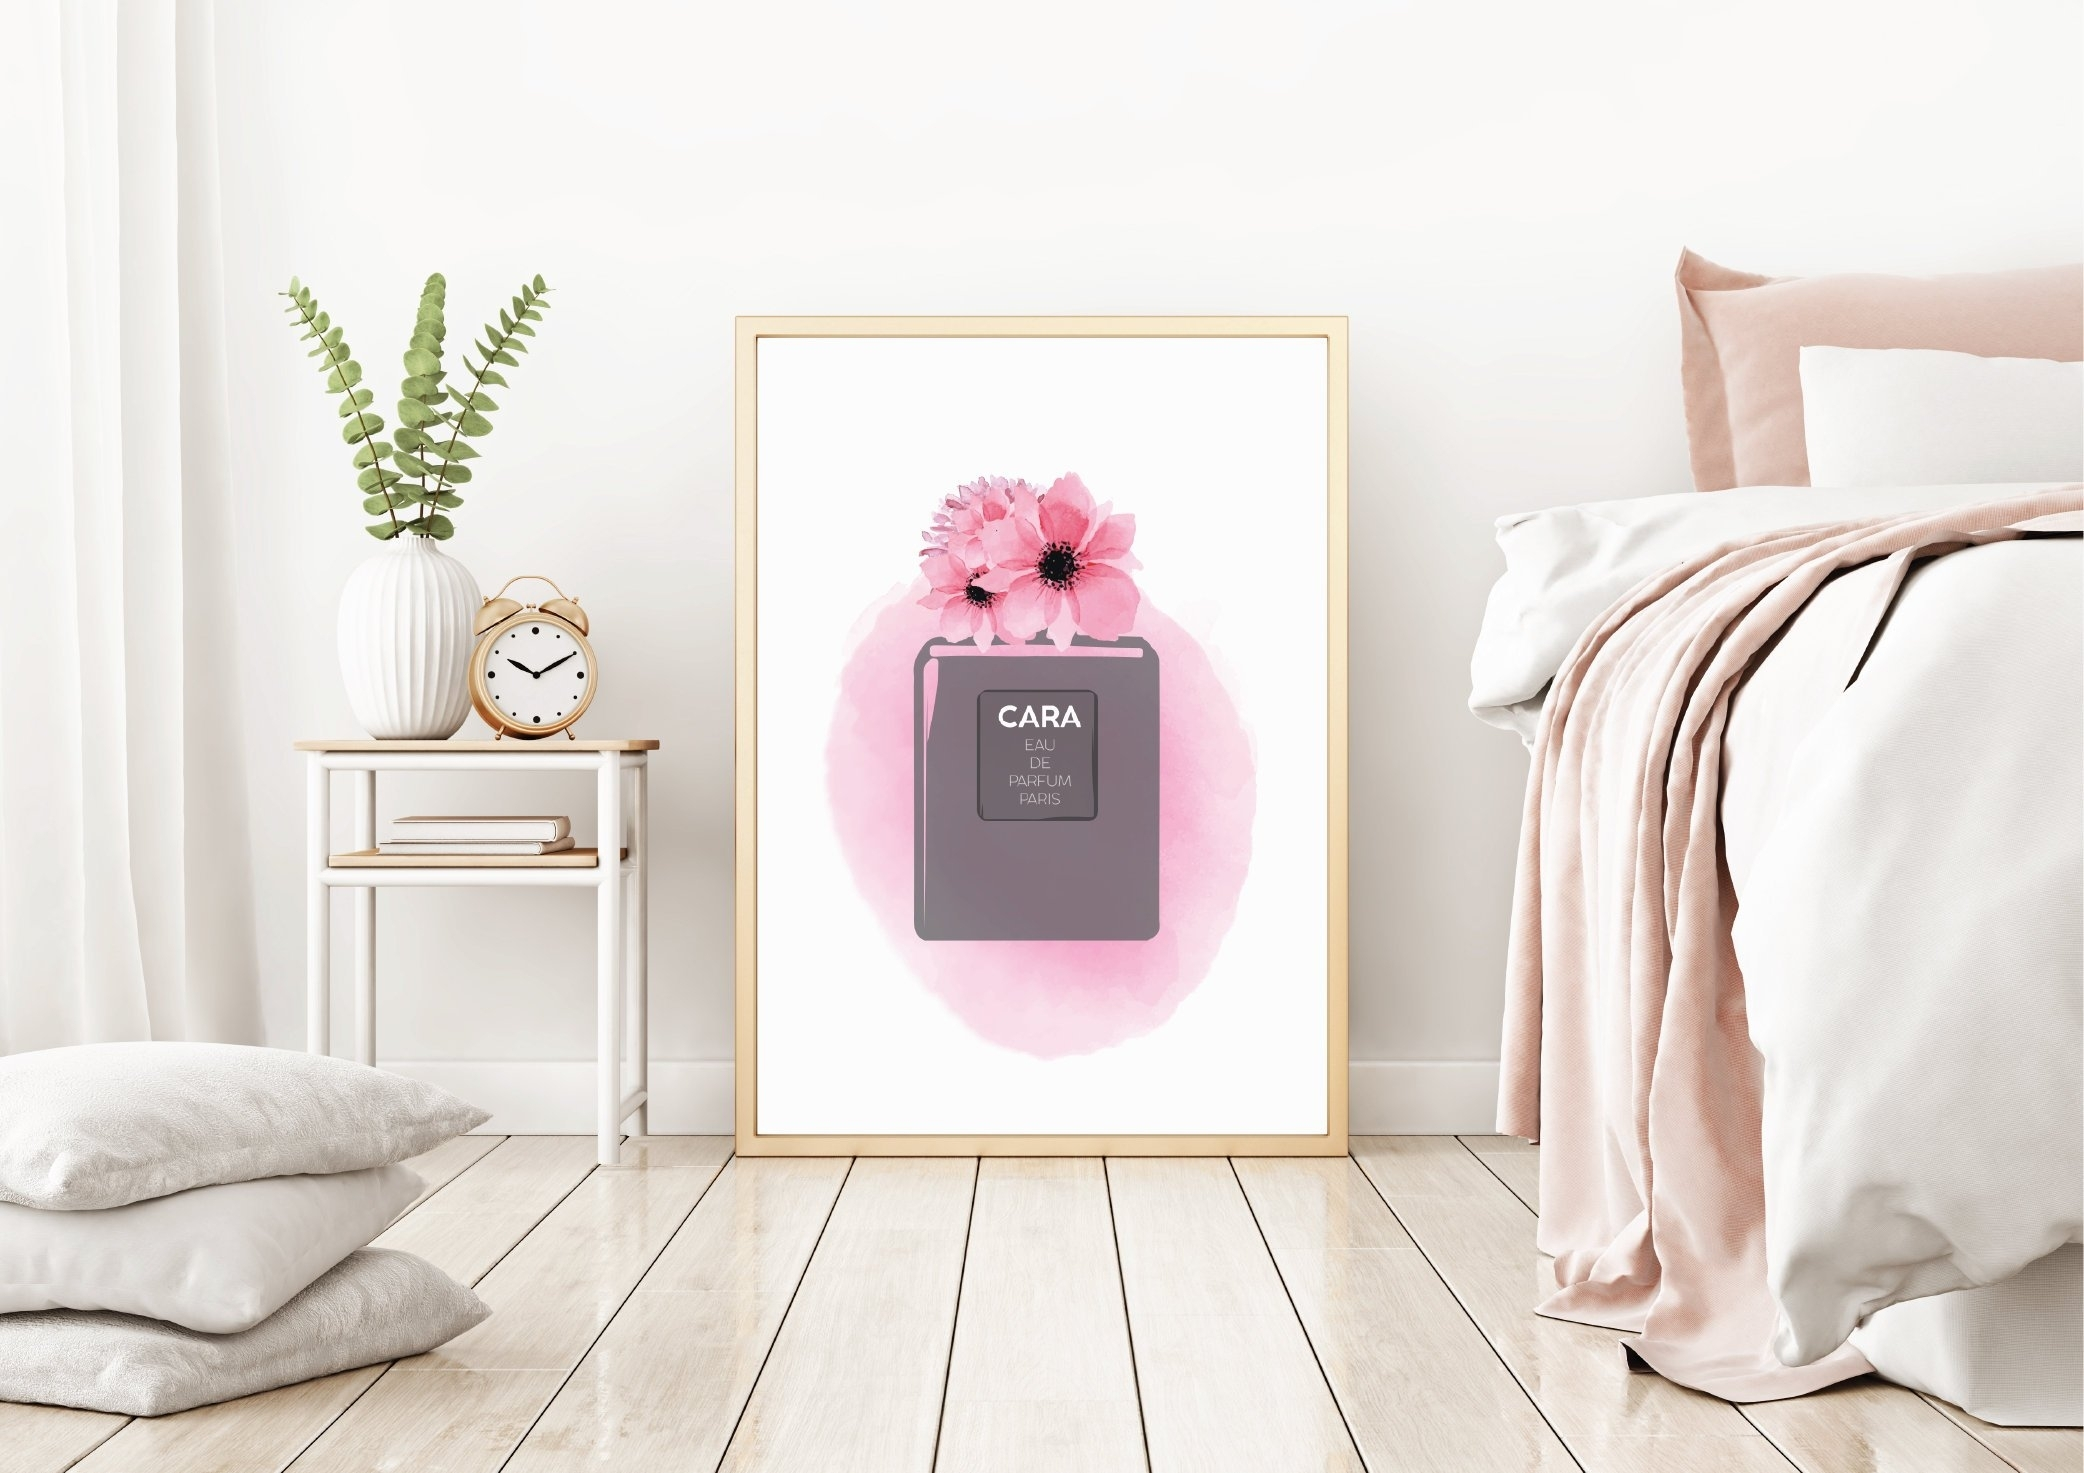 Fashion Wall Art | Personalized Perfume Bottle Print | Custom Wall with regard to Most Up-to-Date Fashion Wall Art